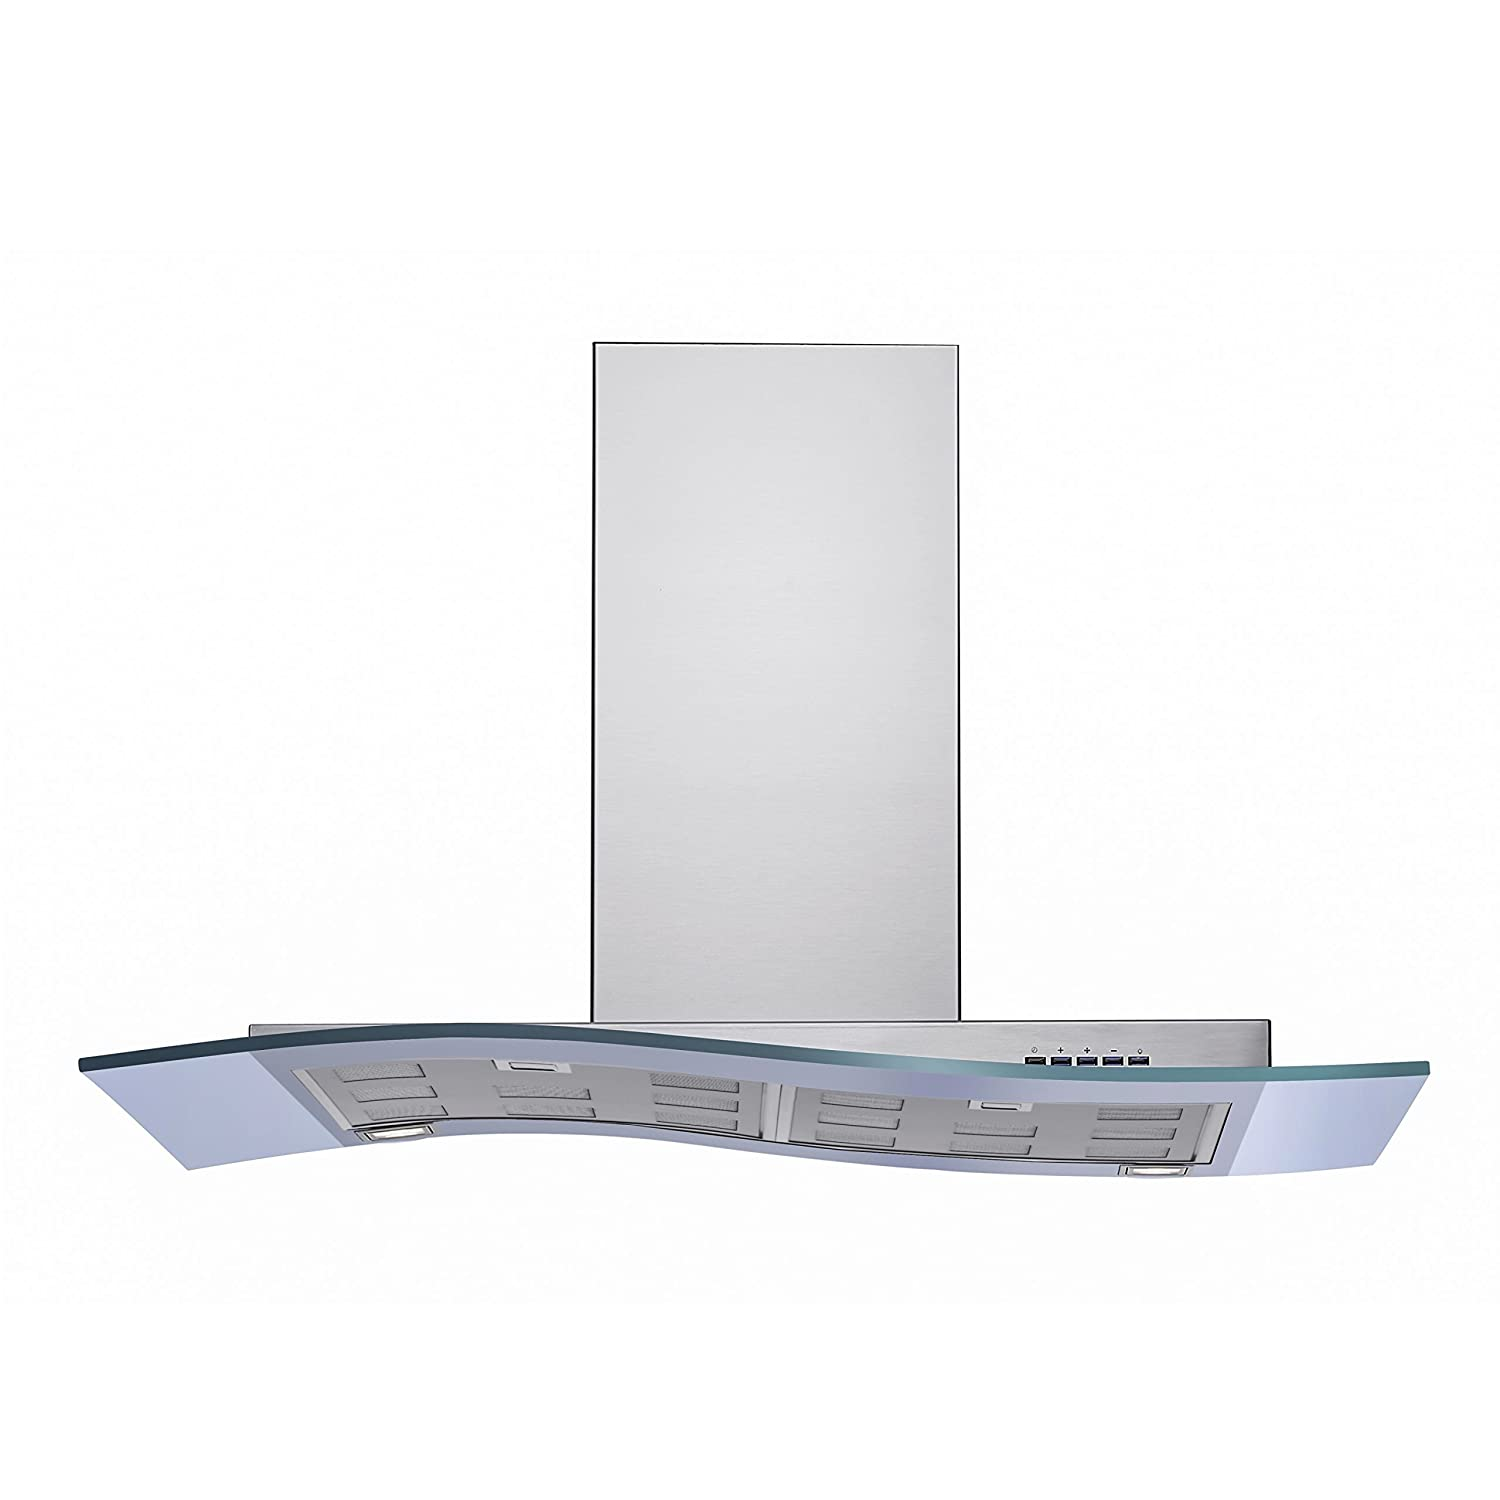 Ultra-Quiet Modern Stainless Steel /& Curved Glass with Blower LED Futuro Futuro Mystic Glass 36 Inch Wall-mount Range Hood